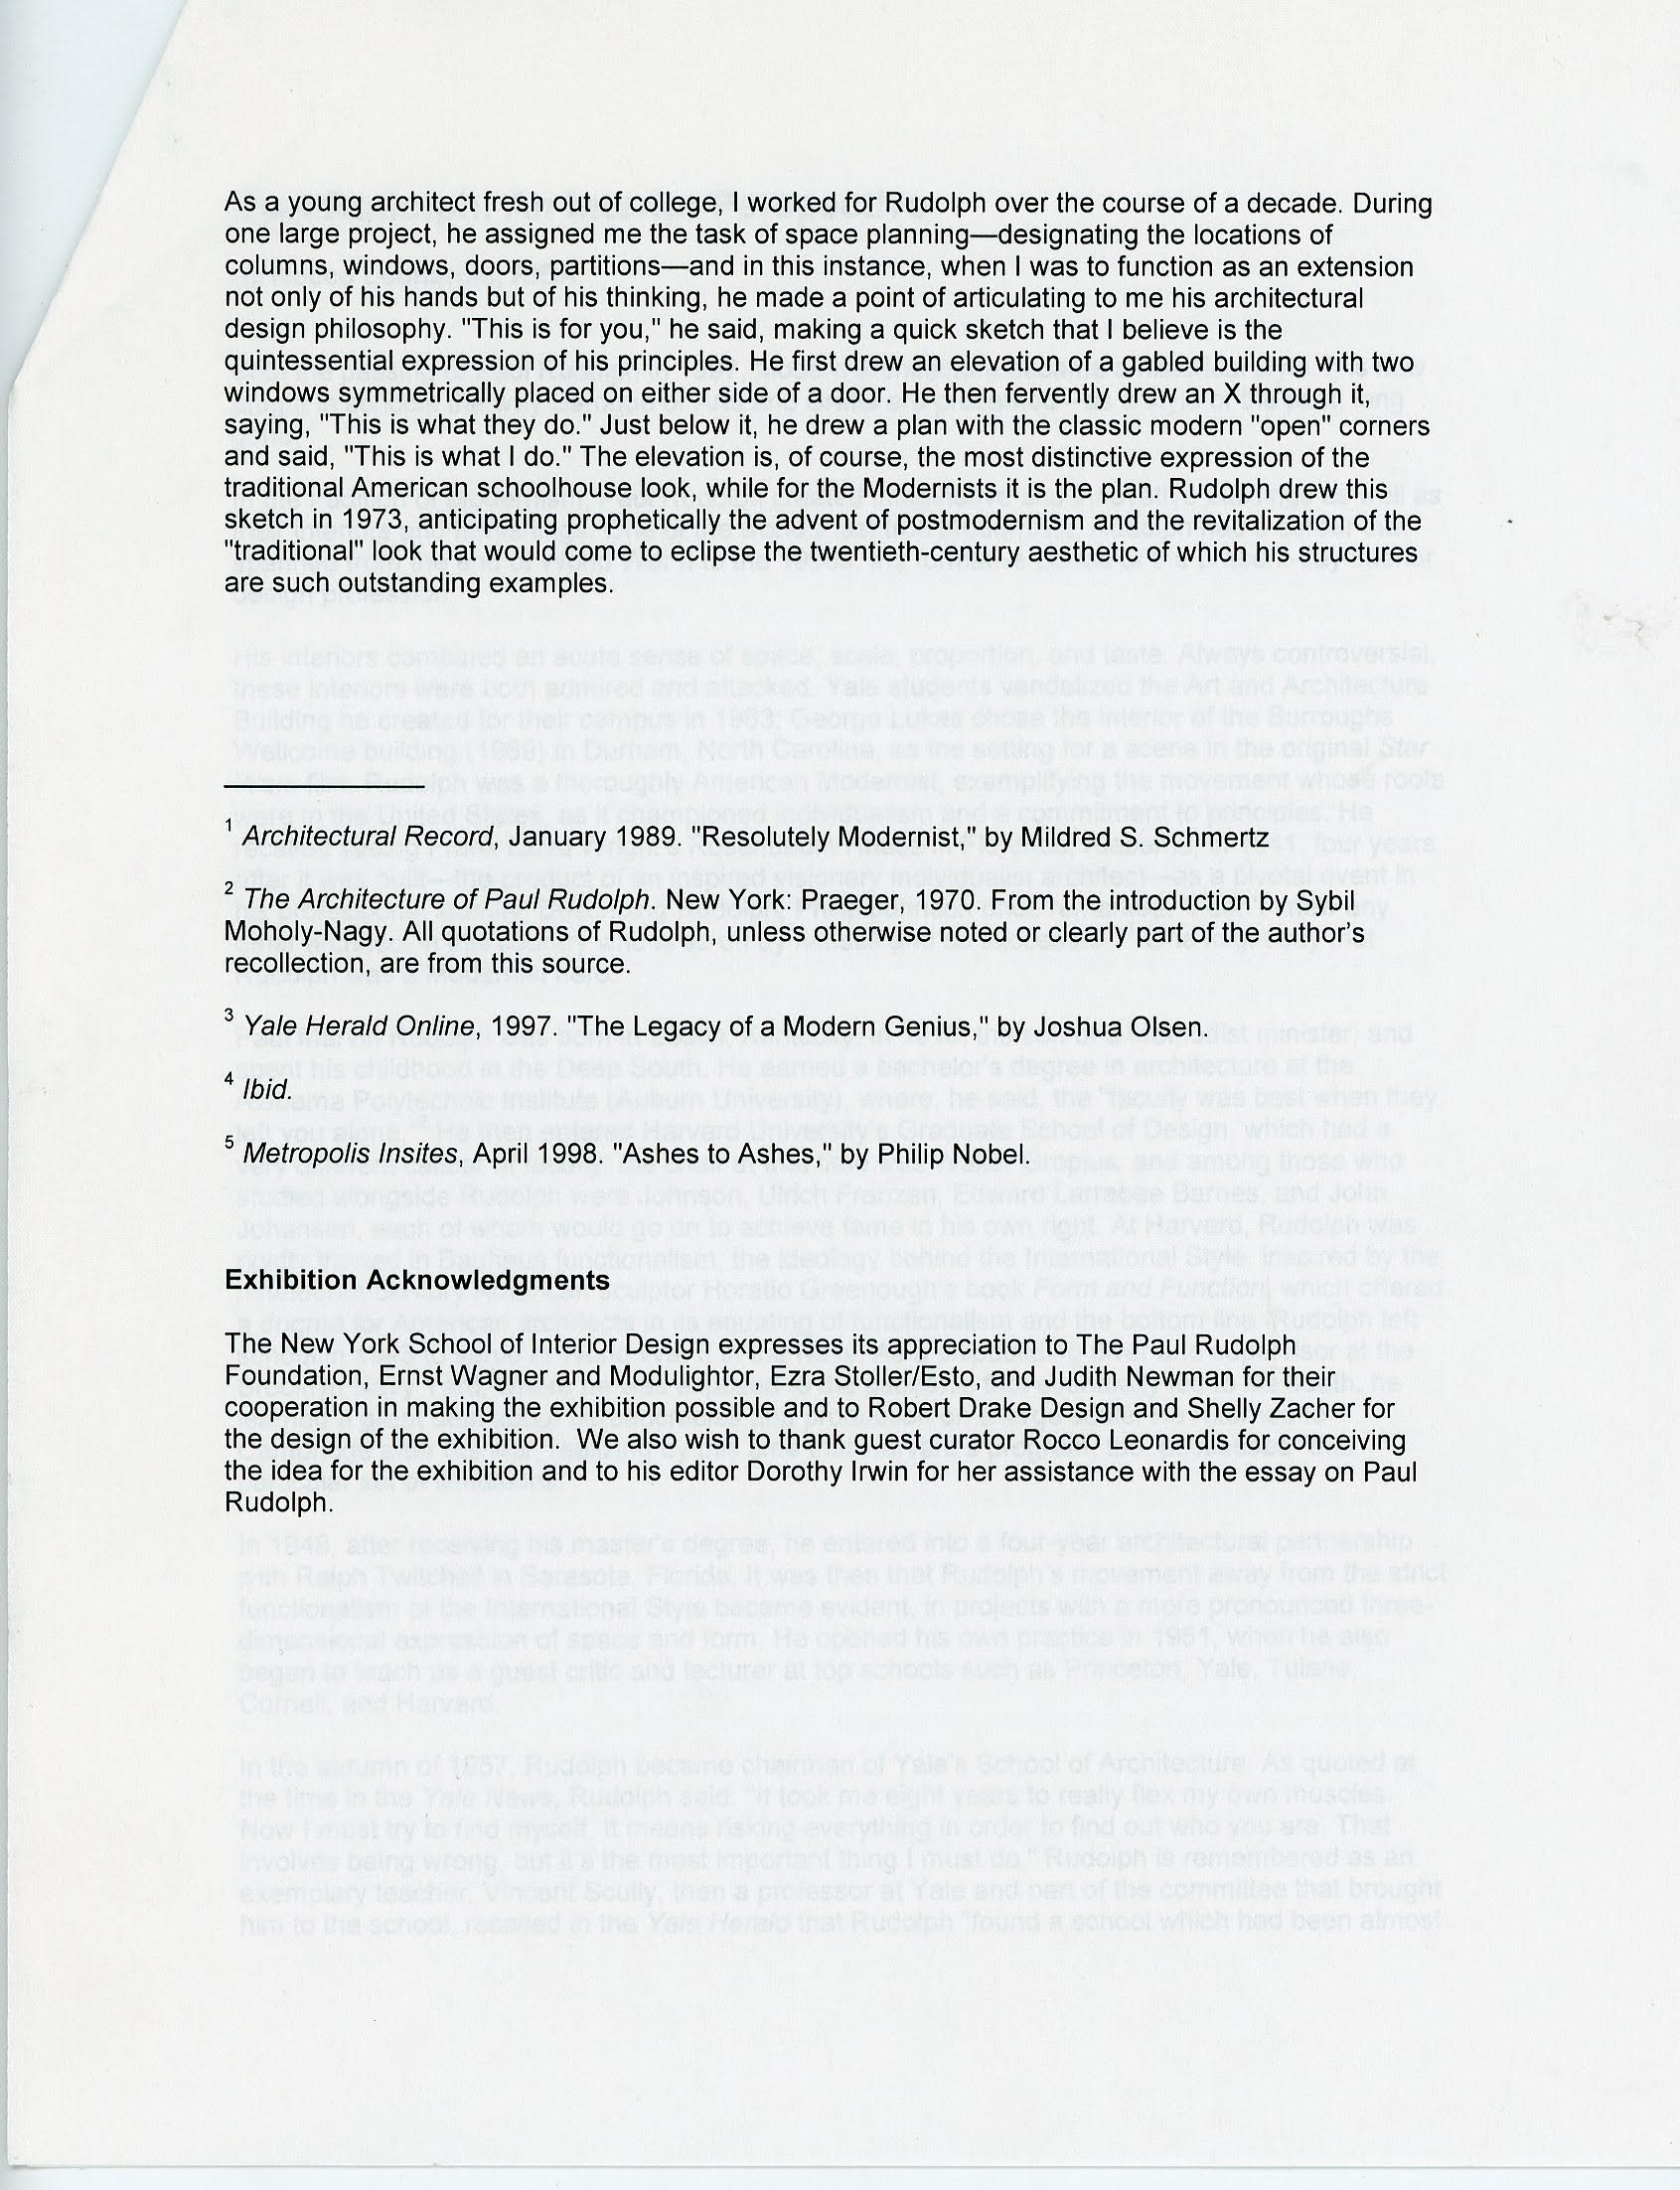 Rocco document - page 4 of 4.jpg